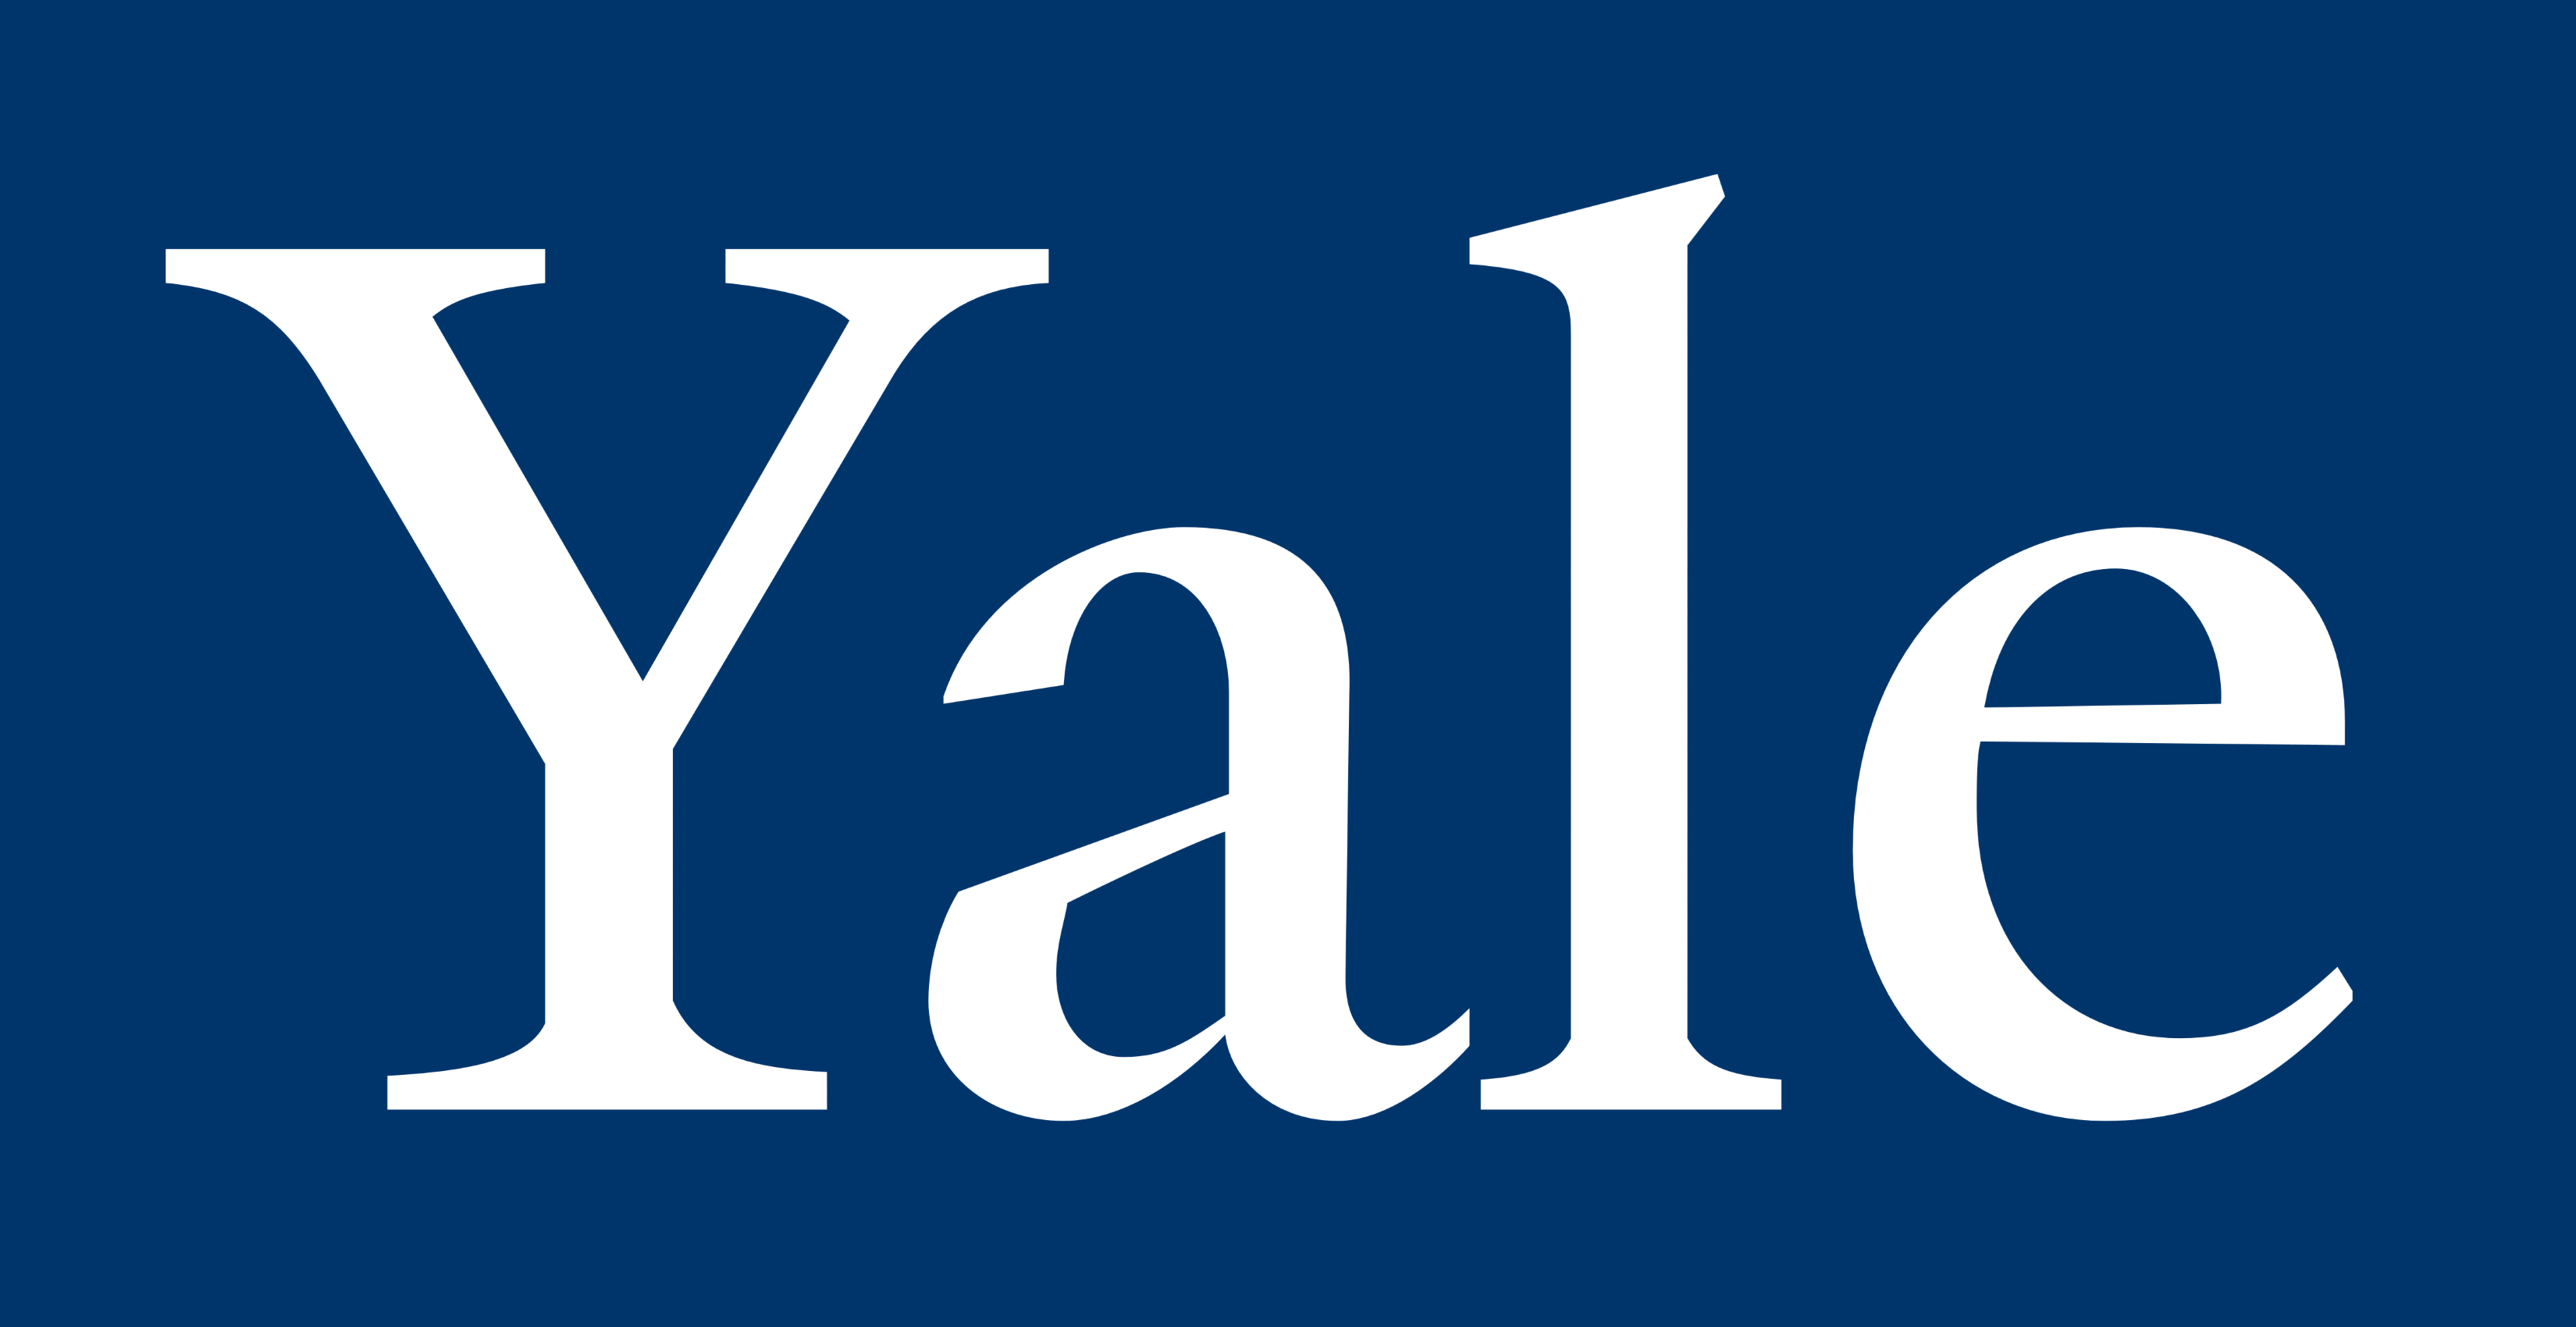 https://logos-download.com/wp-content/uploads/2016/11/Yale_logo.png